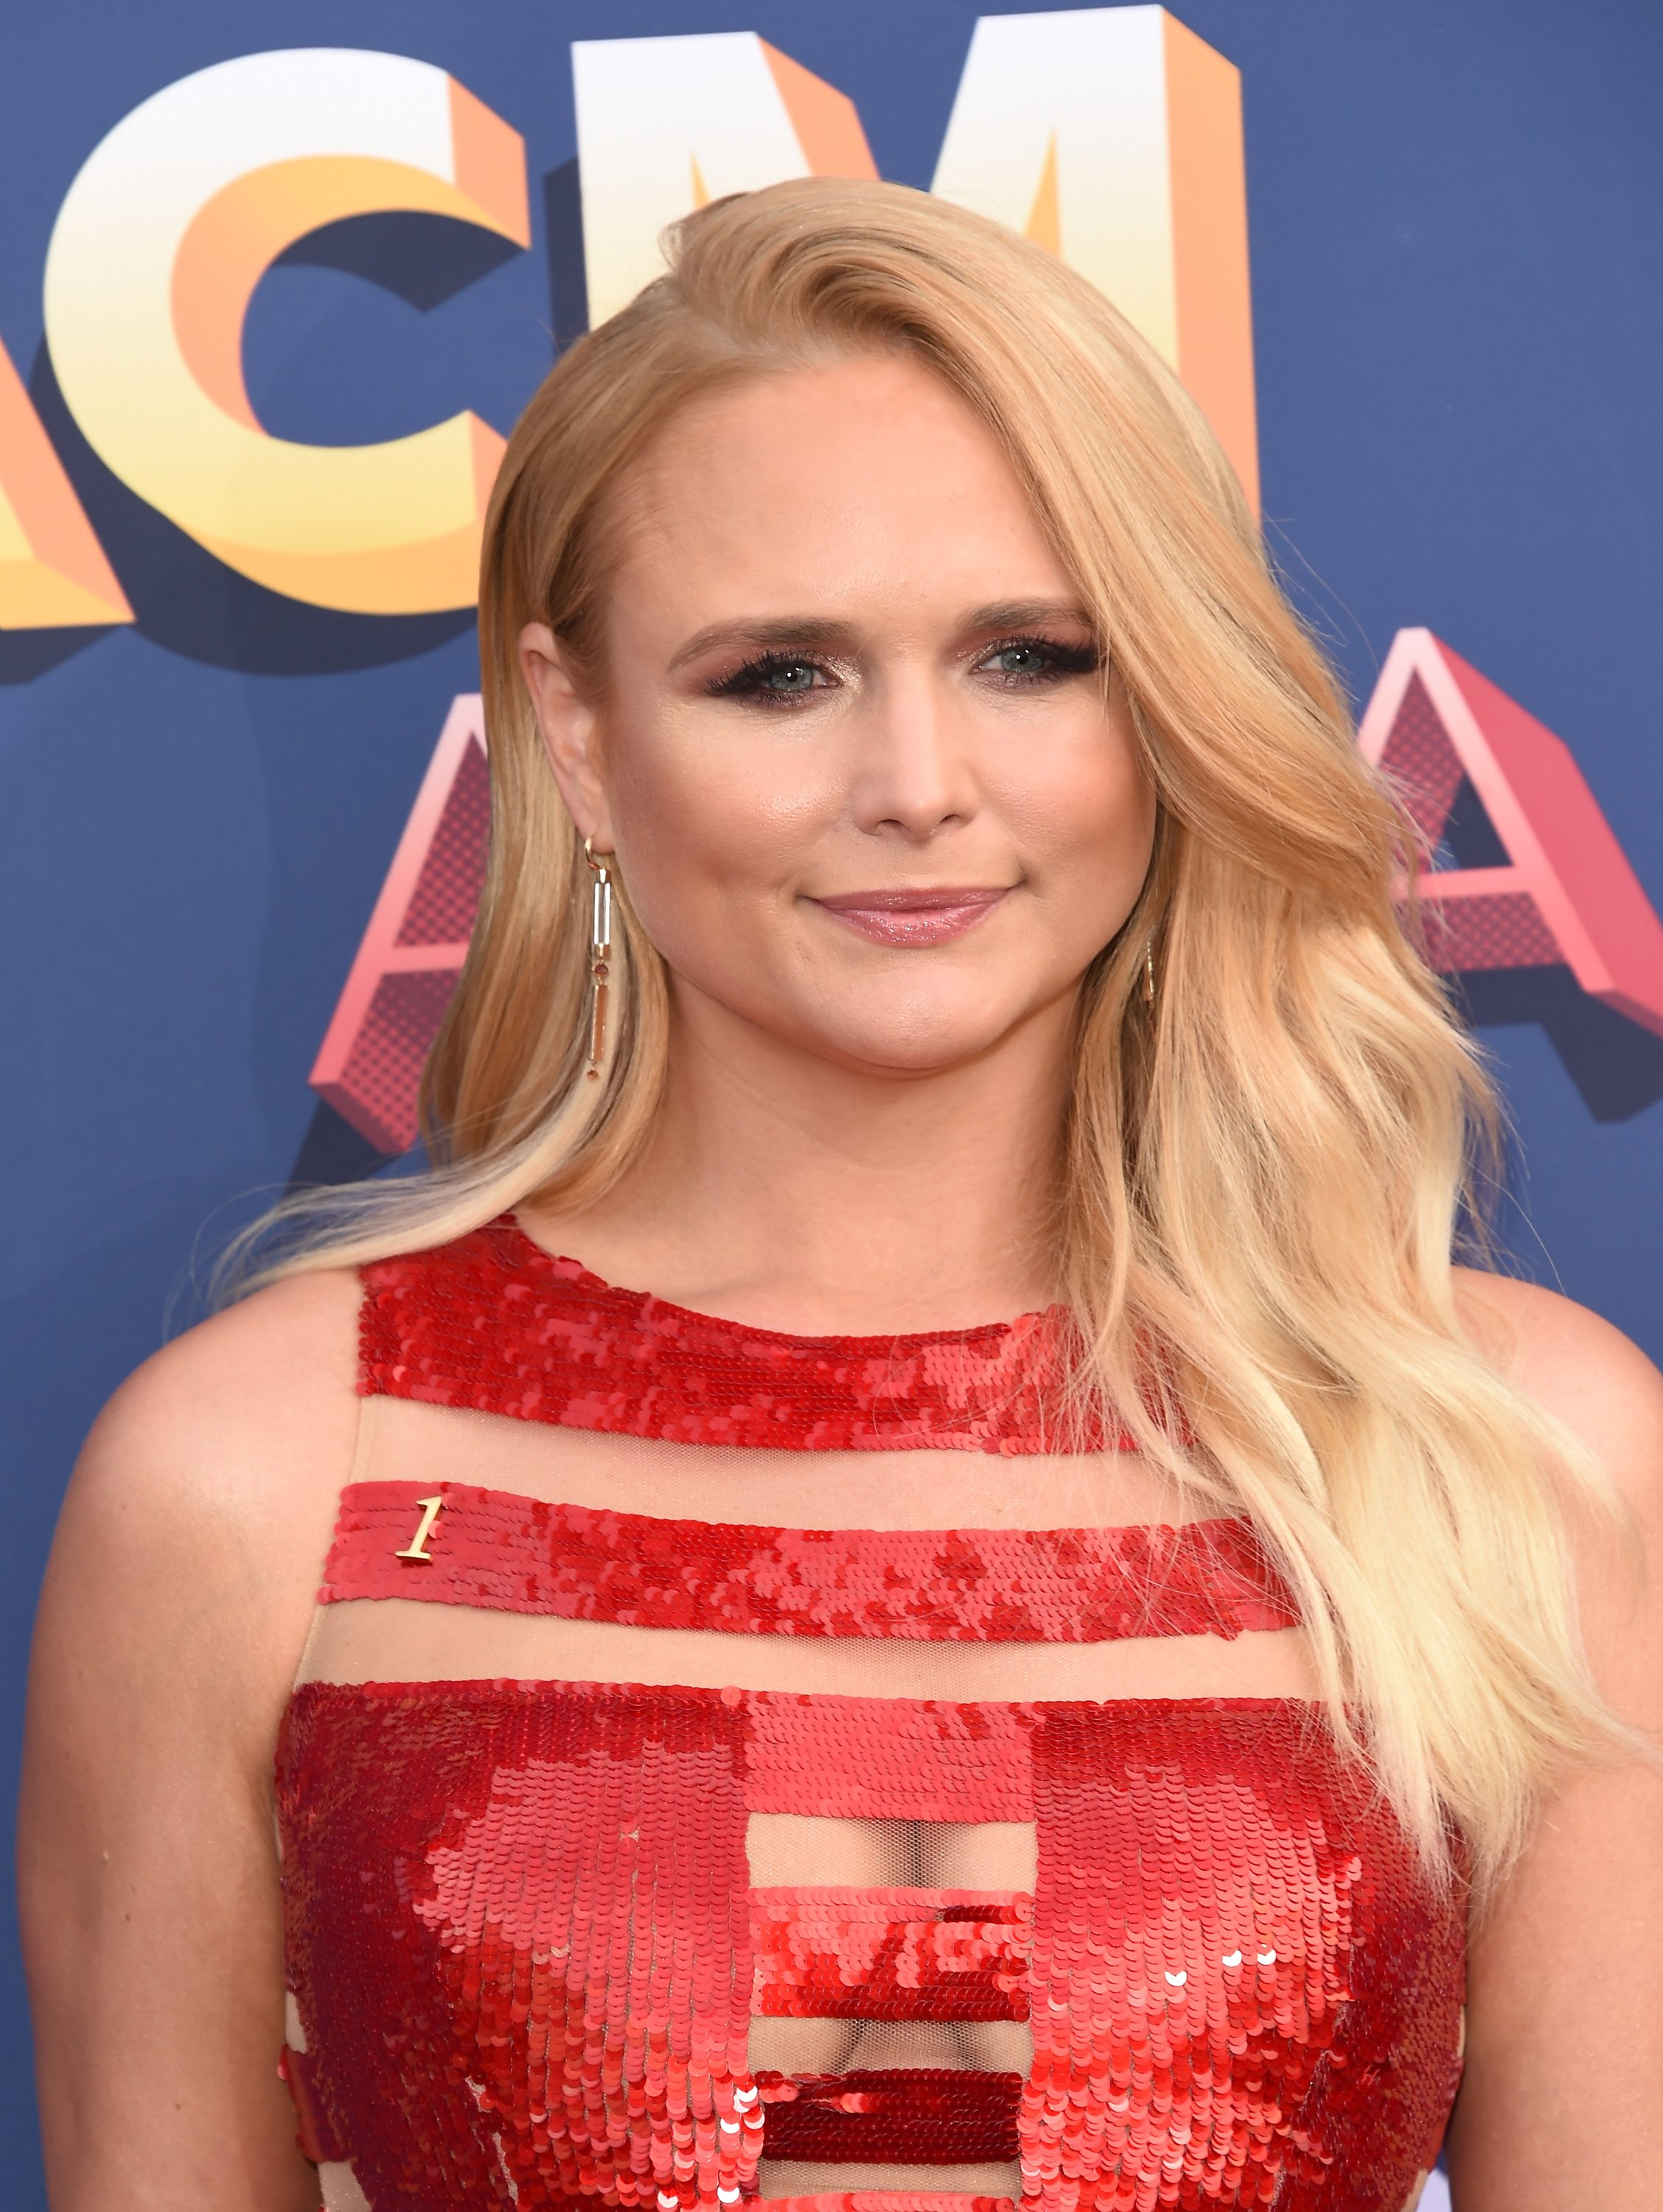 Miranda Lambert at the 53rd Academy of Country Music Awards in Las Vegas, Nevada. | Photo: Getty Images